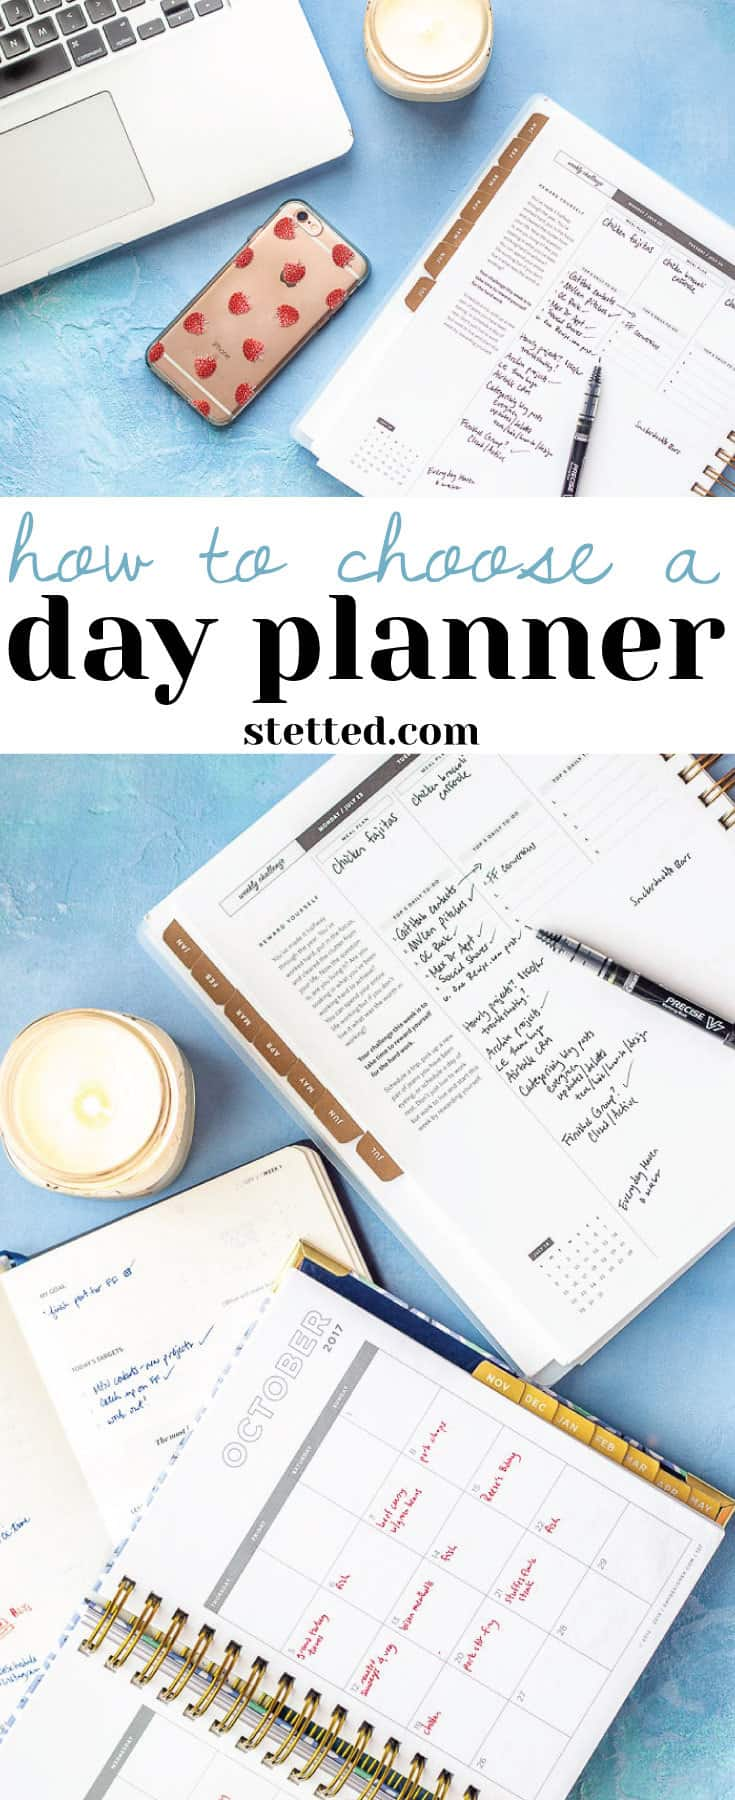 Confused about planners? Here's how to choose a day planner that works for your lifestyle.